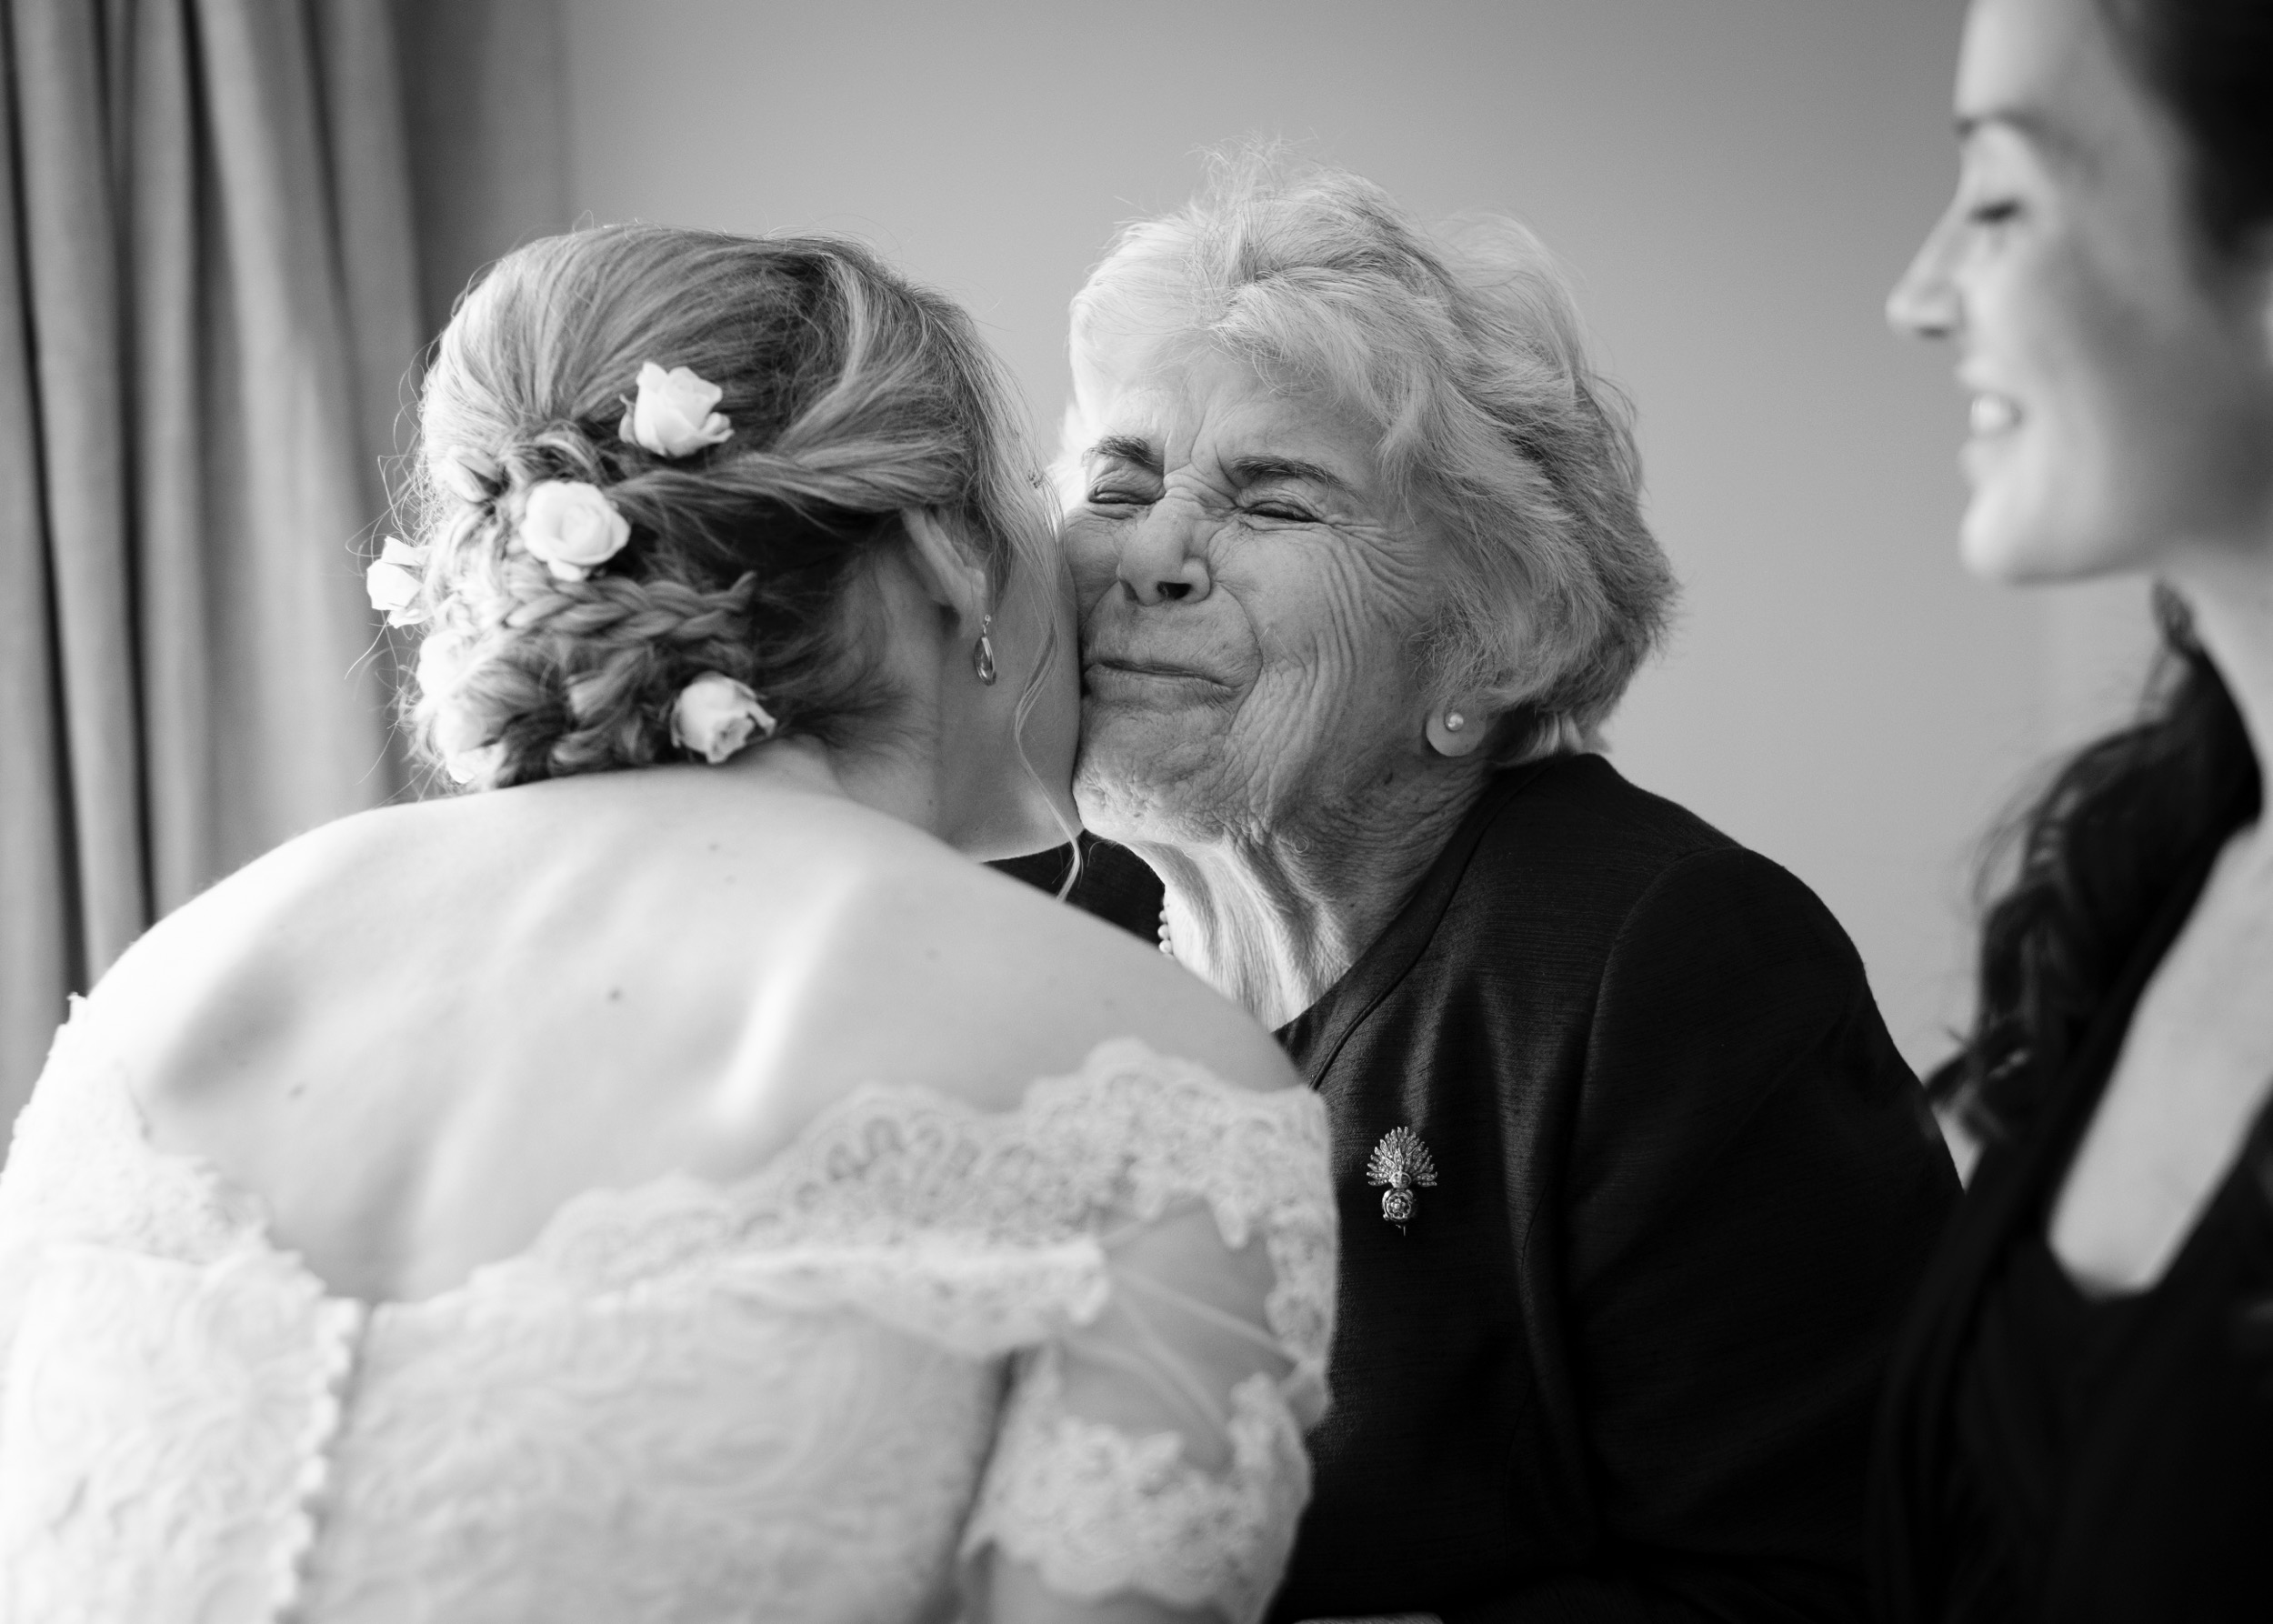 Wedding photographer Rupert Marlow photograph of Emotional grandmother kissing the Bride on the morning of her wedding.